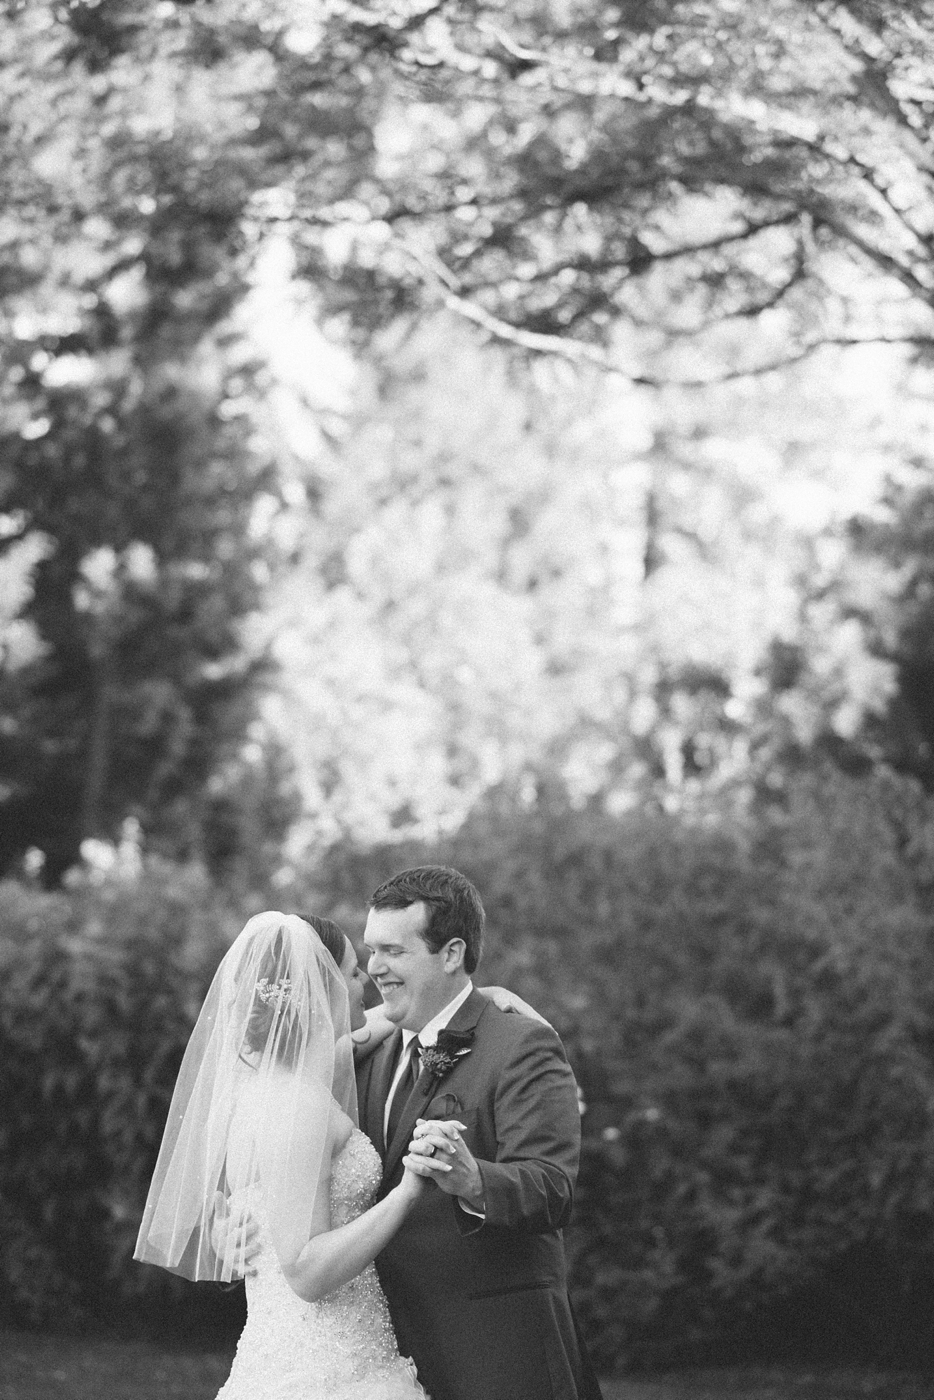 portland-oregon-wedding-photographer-mcmenamins-edgefield-natural-couples-portraits-romantic-kiss-black-and-white-shelley-marie-photo-12